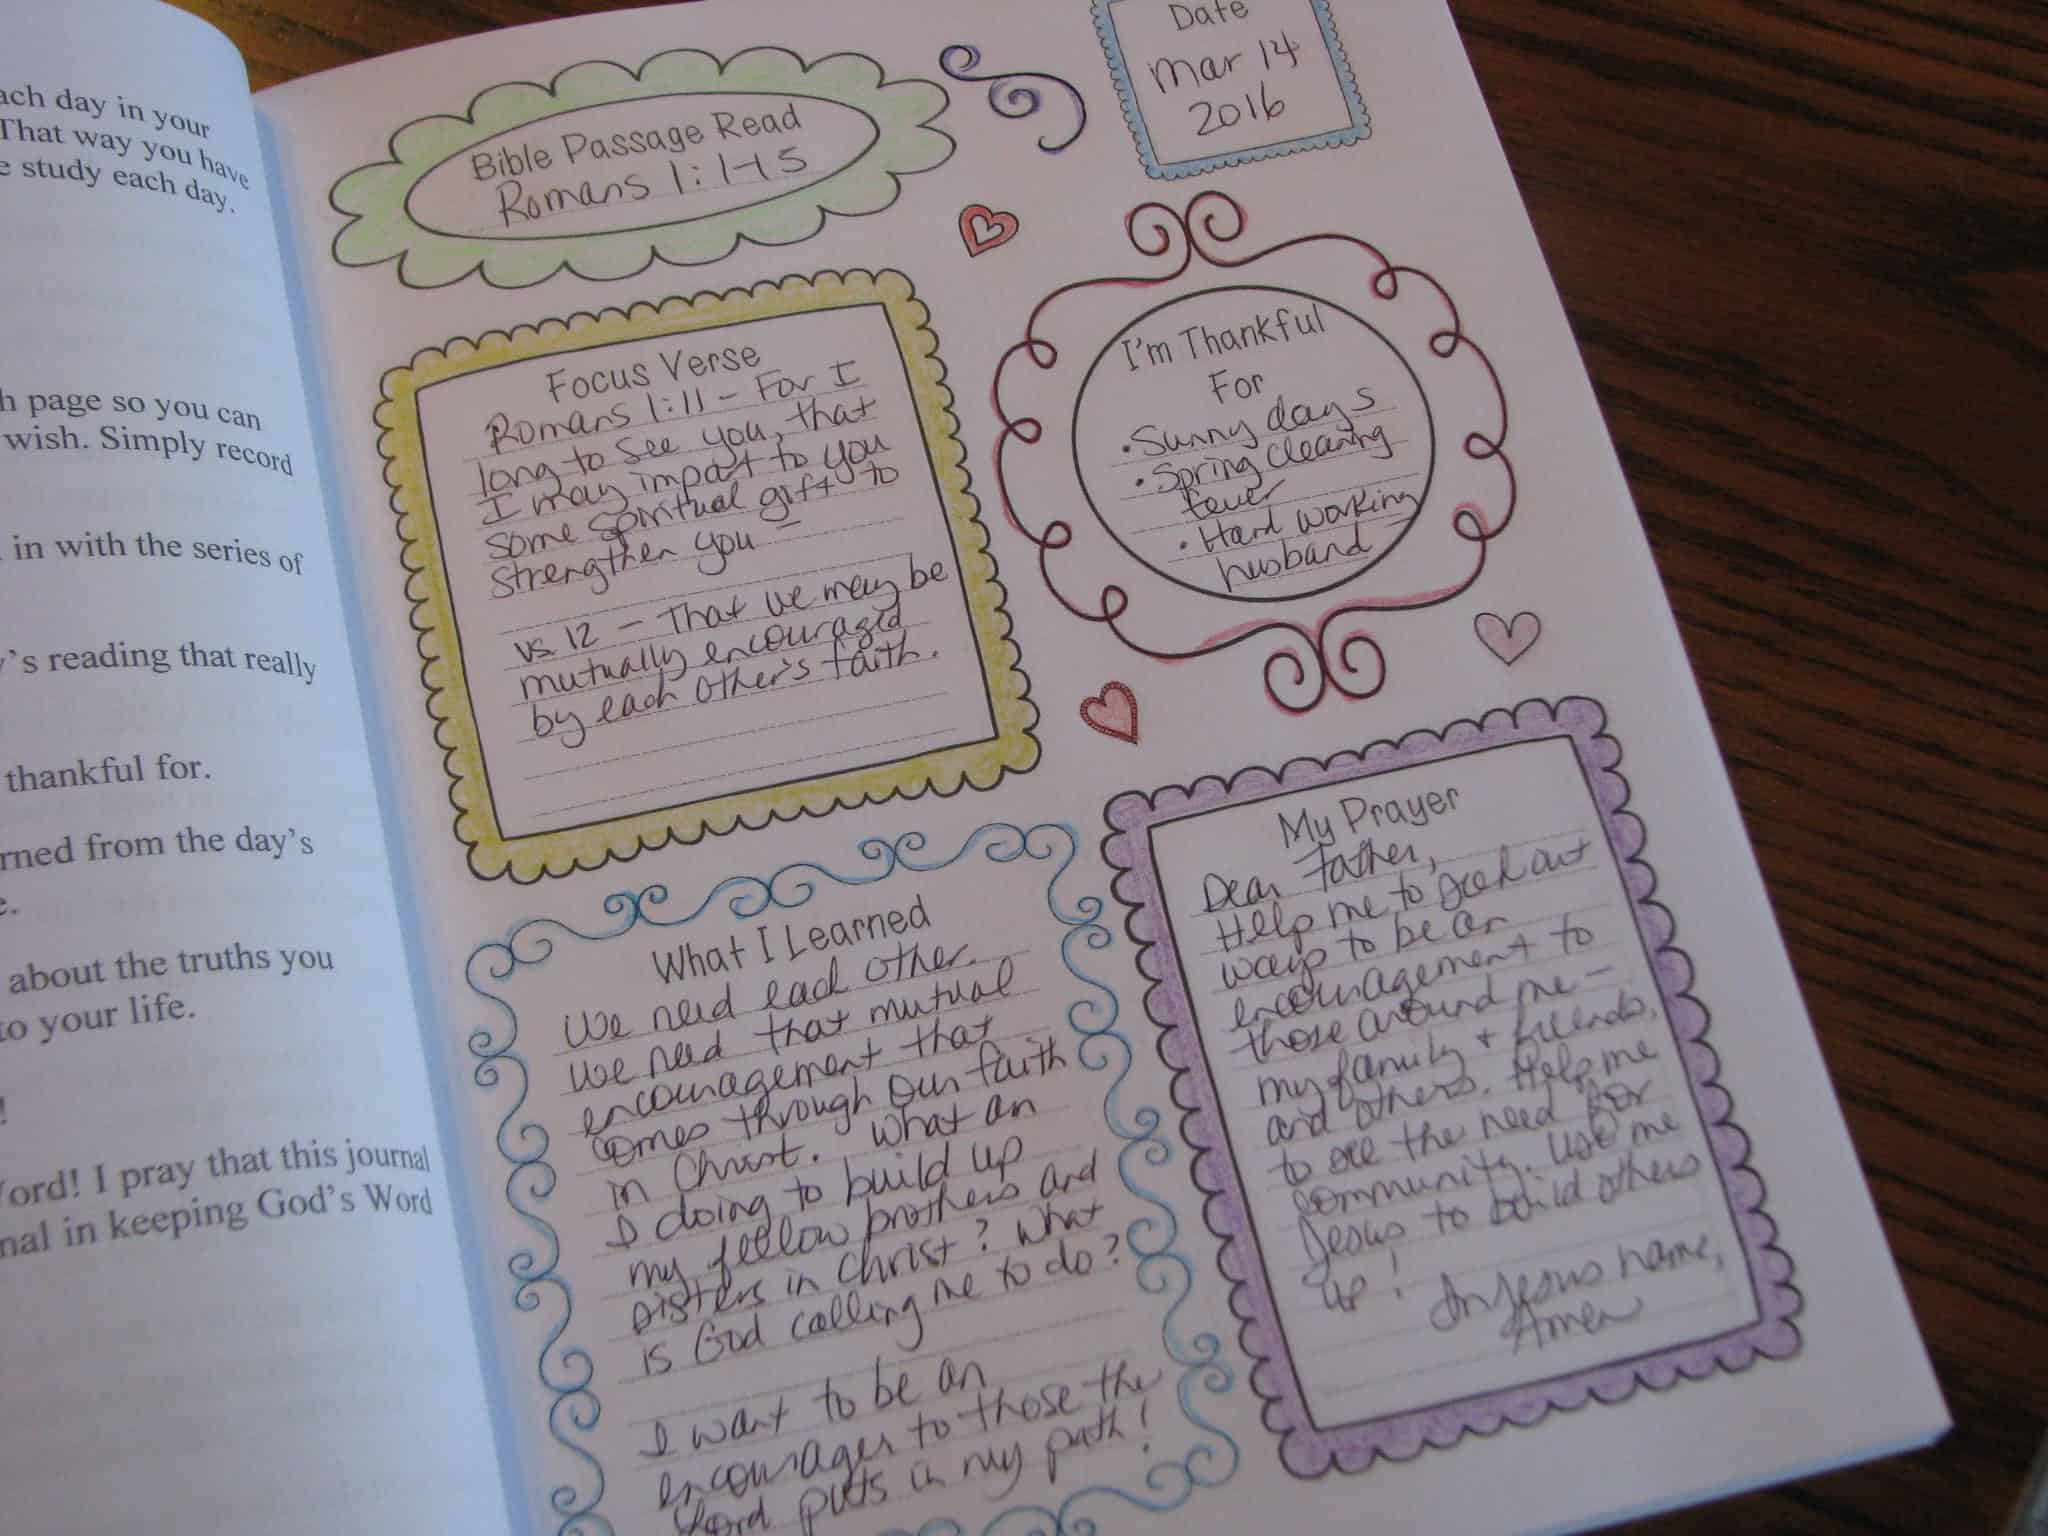 New Intentional Monthly Planner & Intentional Quiet Time Journal Books Now For Sale + A Peak at My Bible Study from Yesterday